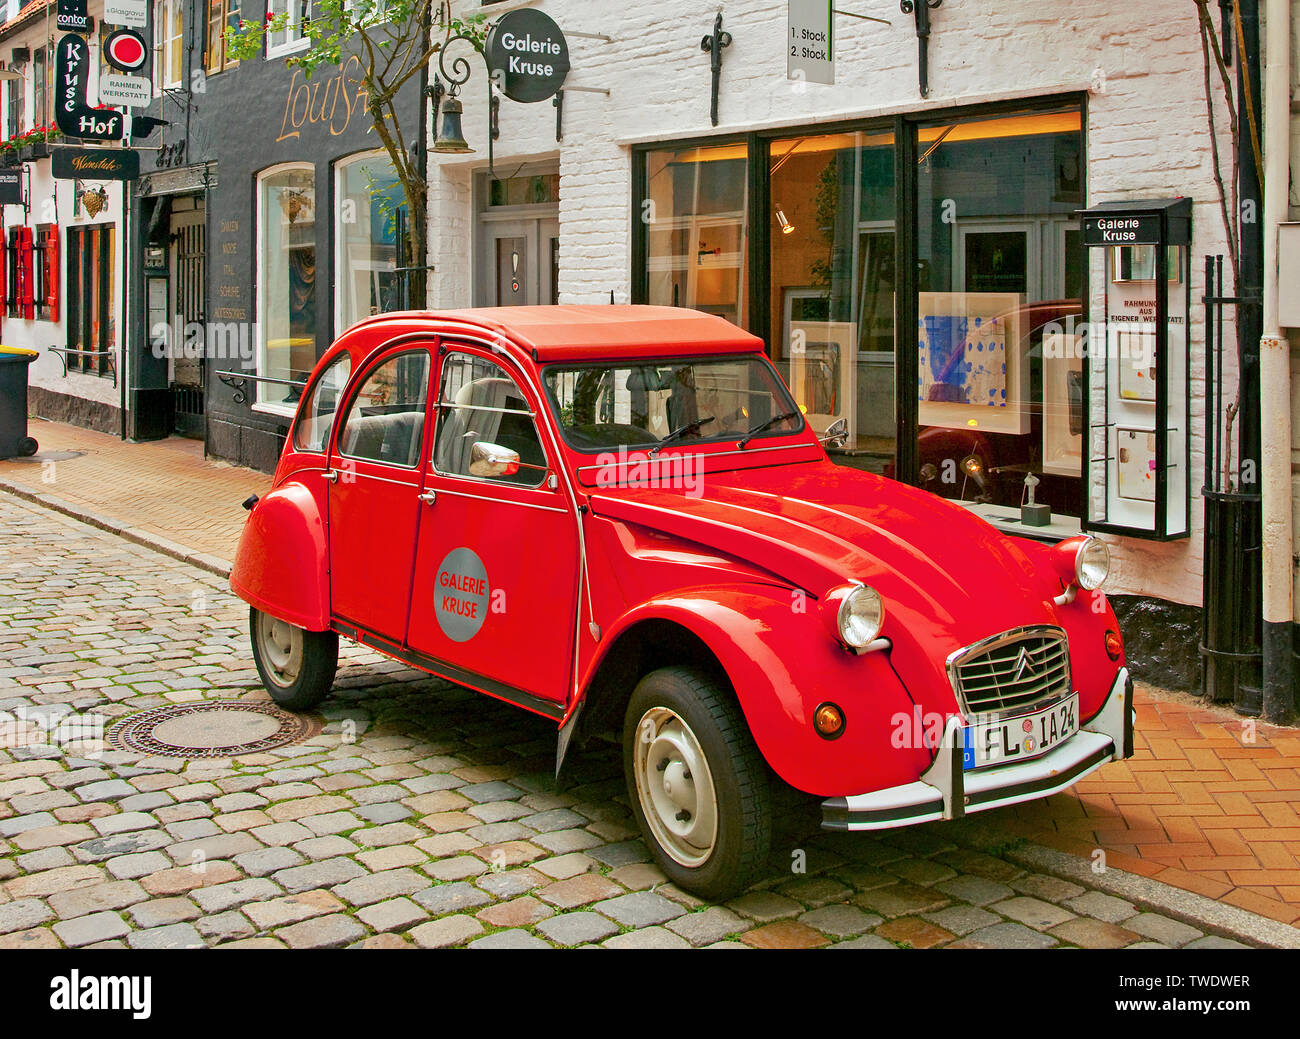 The historic car 2CV of Citroen, also known as duck (german: Ente), Flensburg, Schleswig-Holstein, Germany - Stock Image